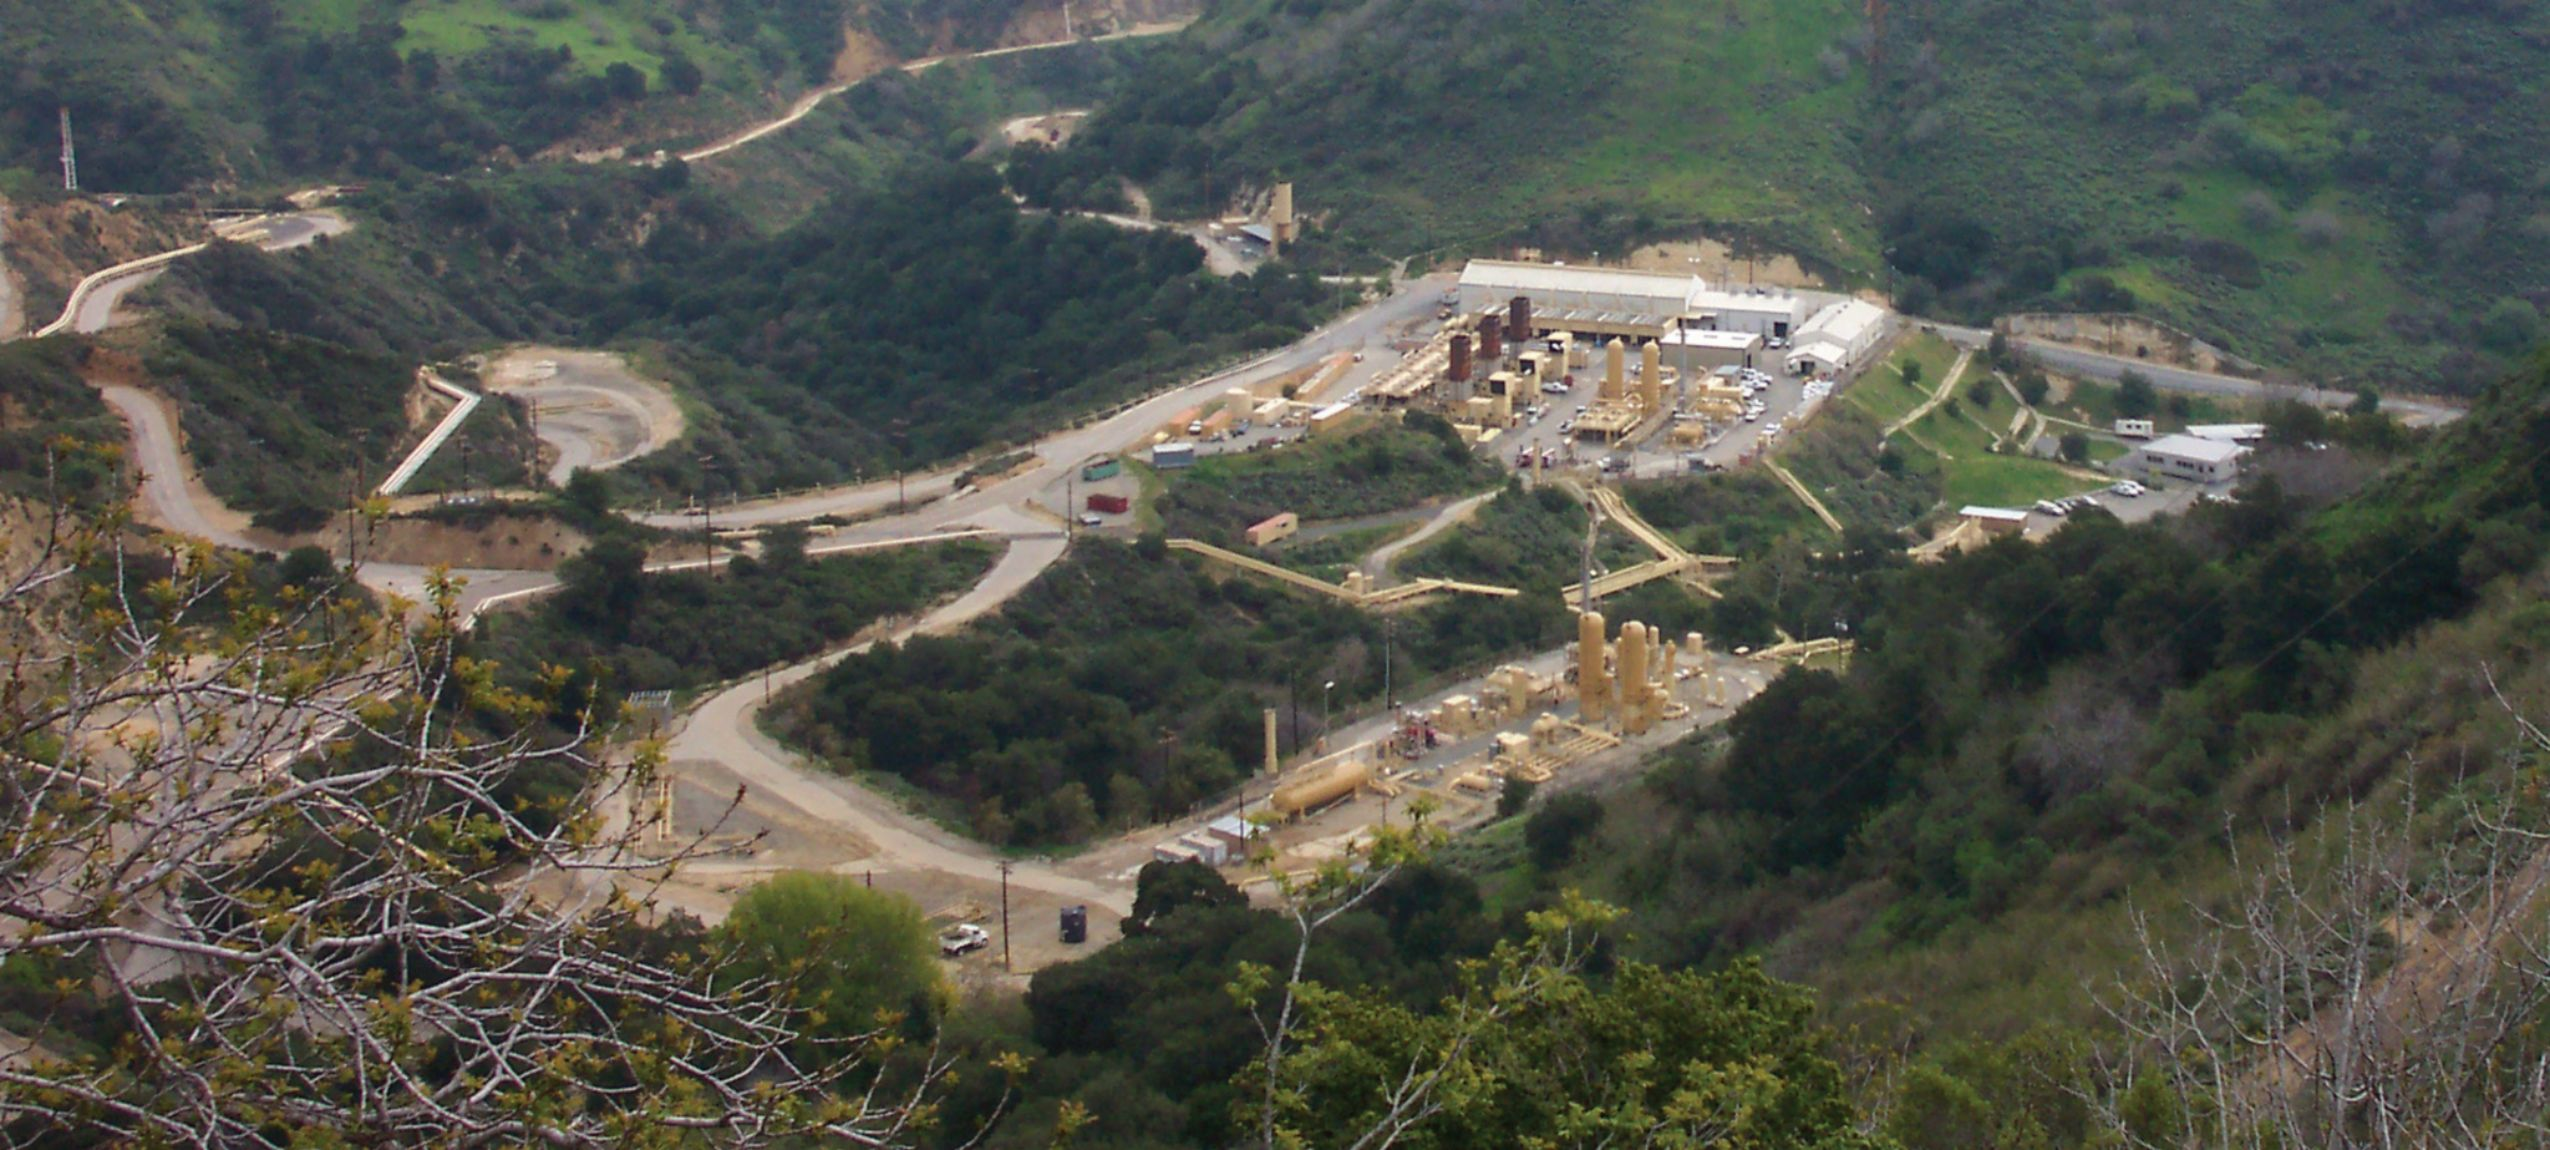 Aliso Canyon Turbine Replacement Project